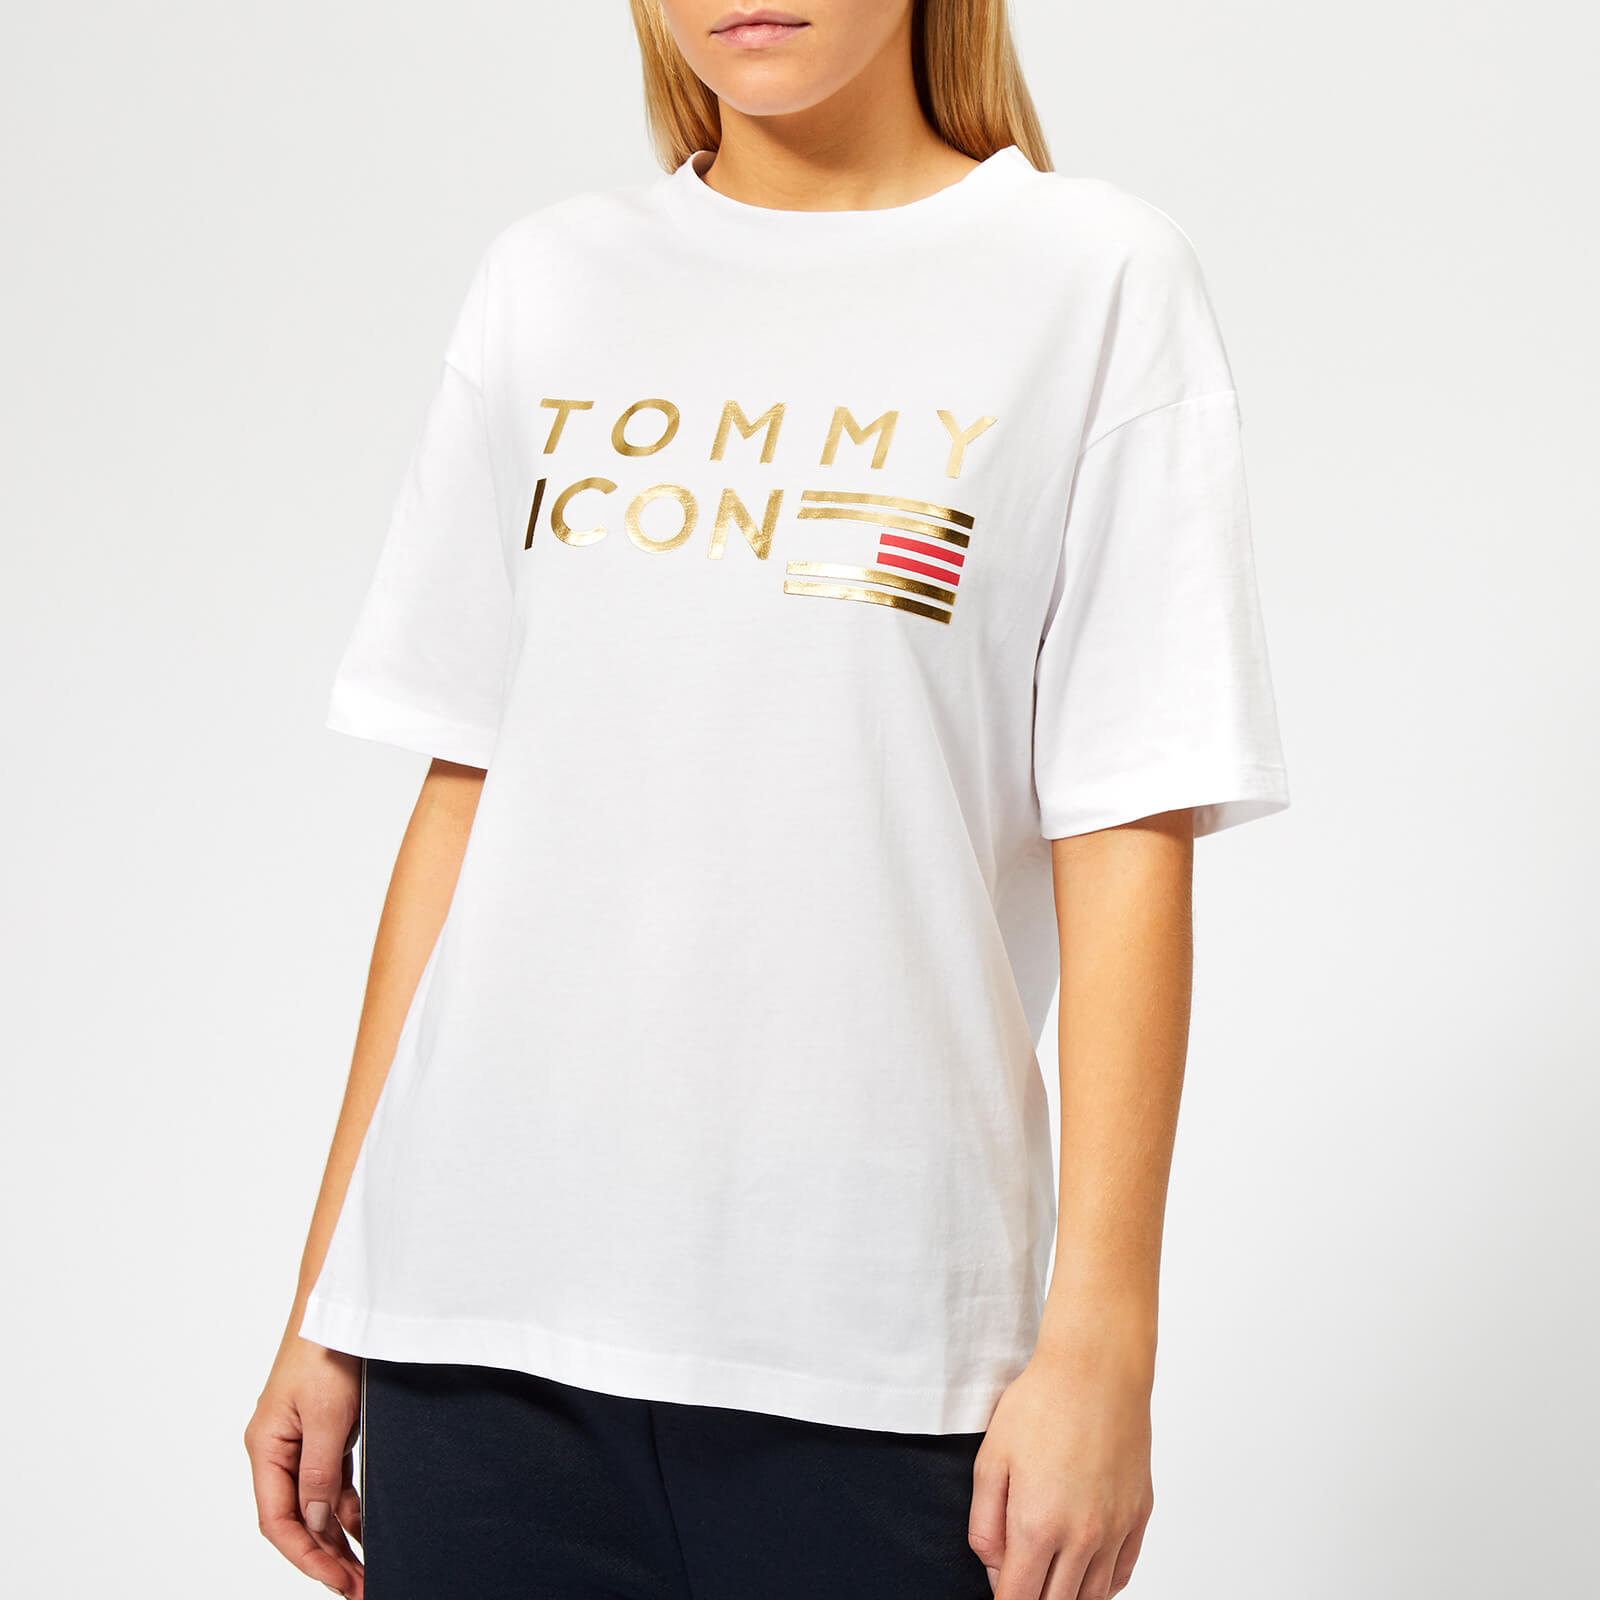 696fd9a4c Tommy Hilfiger Women's Icons Nellie Crew Neck T-Shirt - White Womens  Clothing | TheHut.com